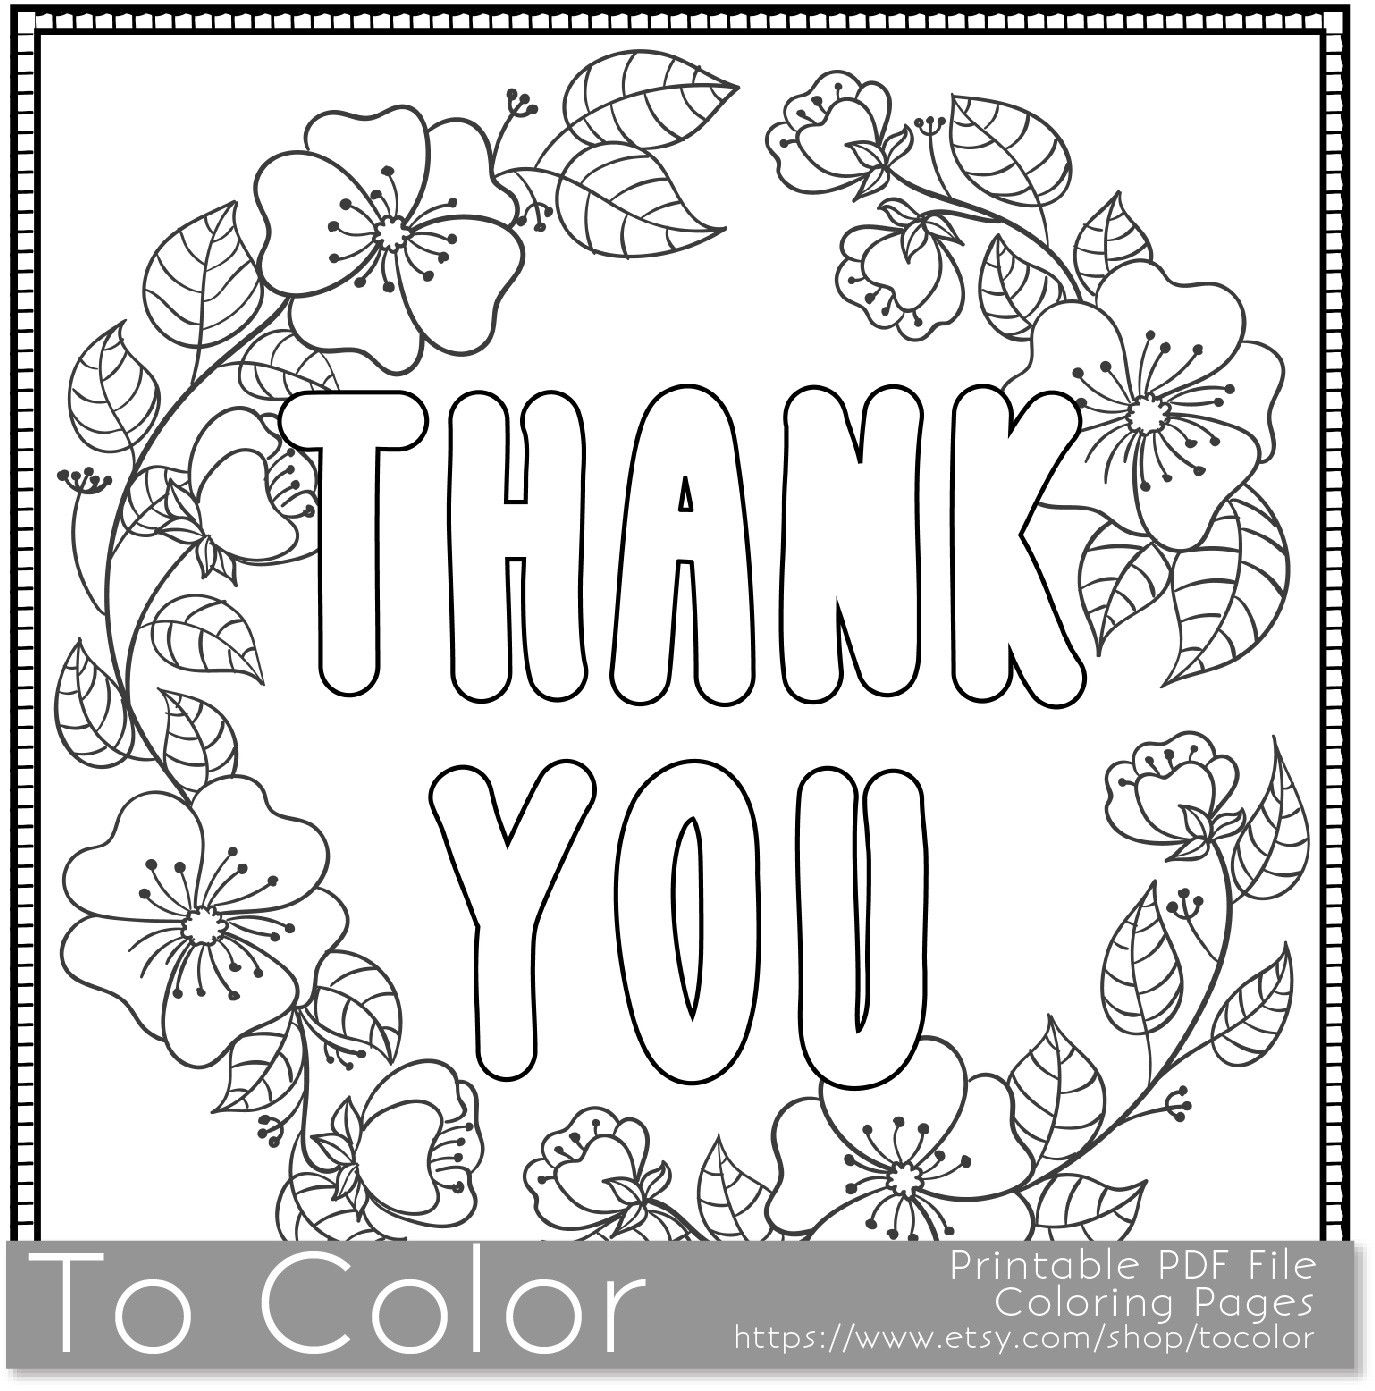 Thank You\' Coloring Page For Grown Ups - this is a printable PDF ...